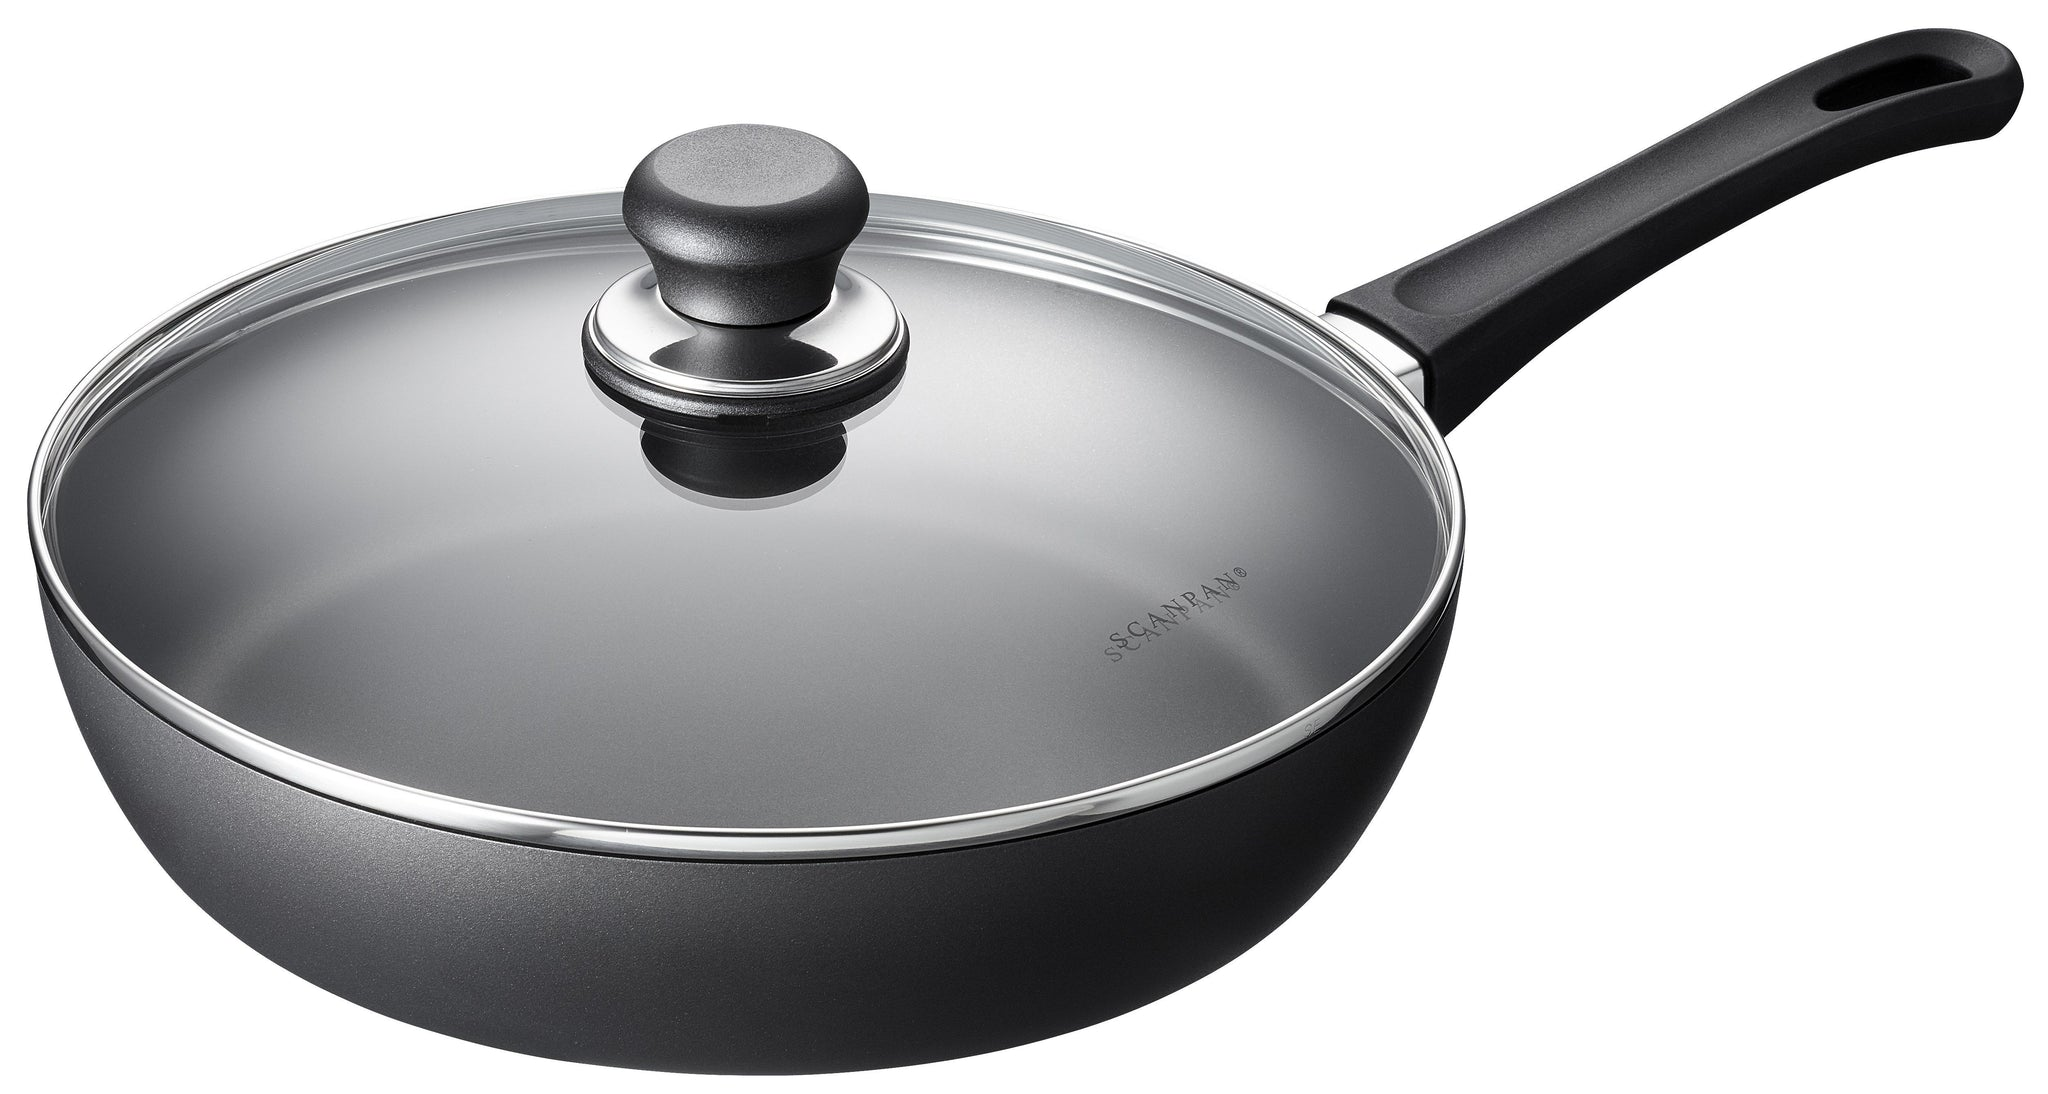 Scanpan Classic Induction Saute Pan